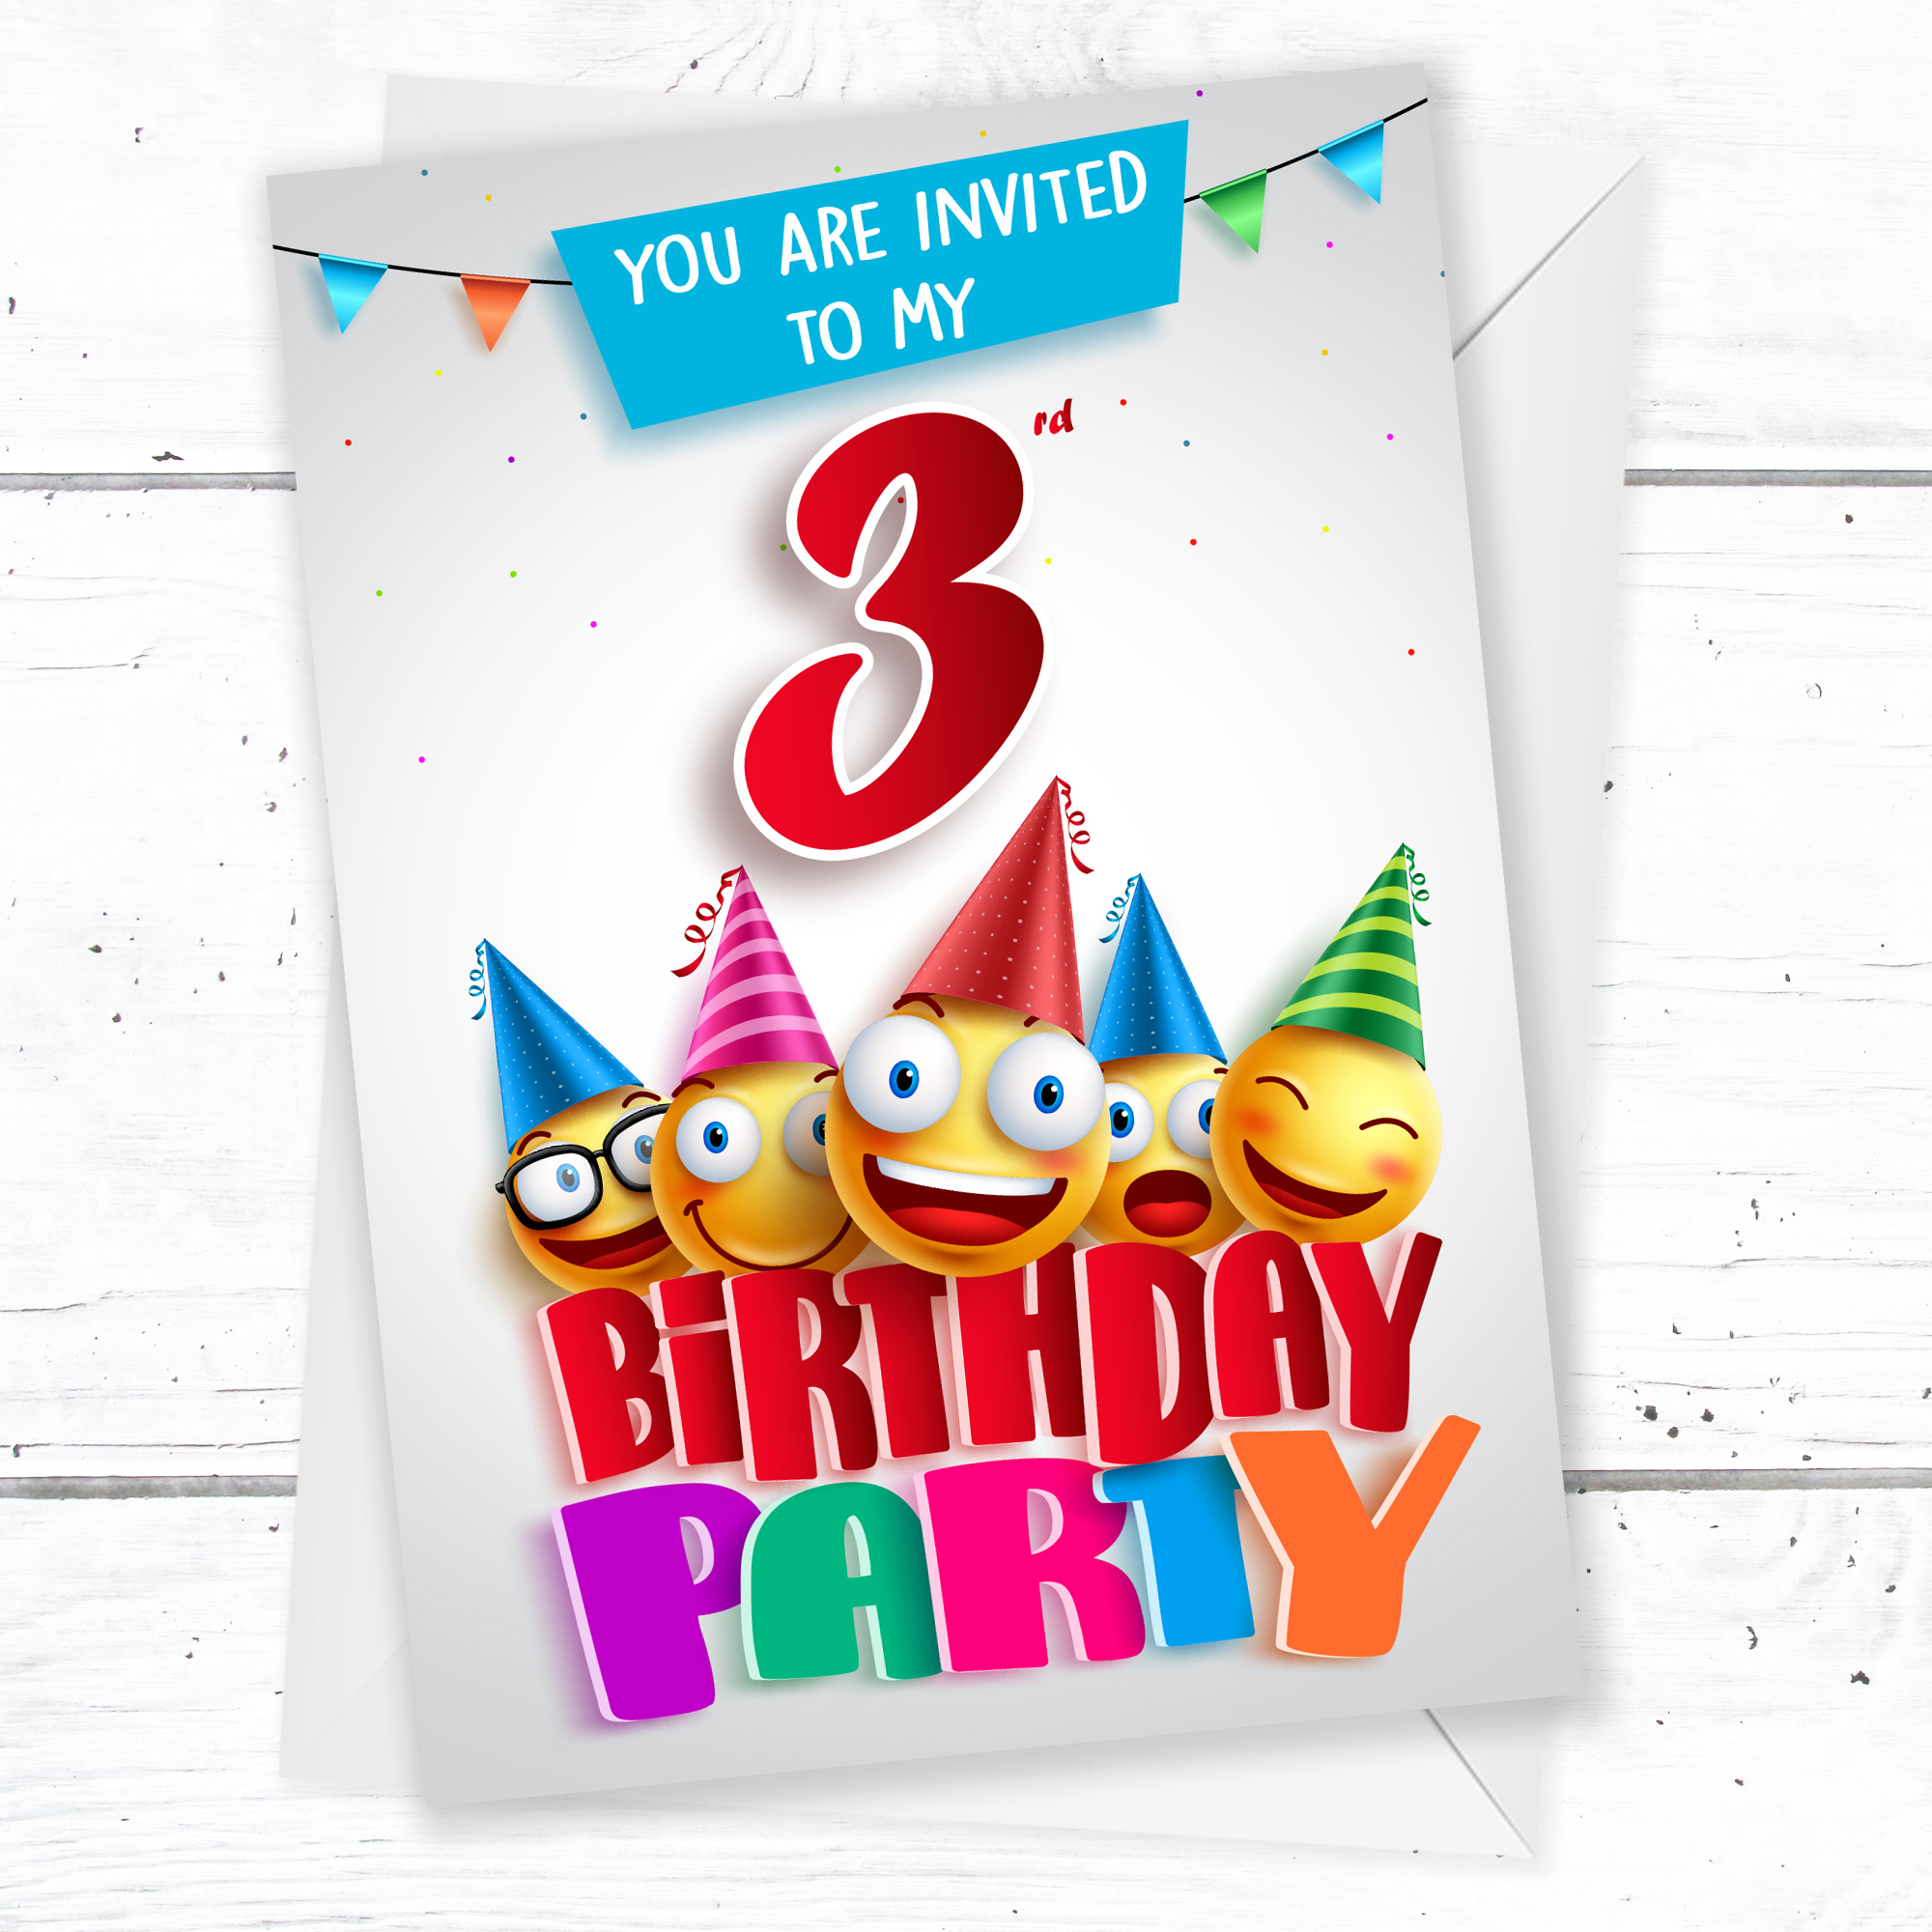 Pyjama Party Birthday Party Invitations Pack 10 A6 Postcard Size